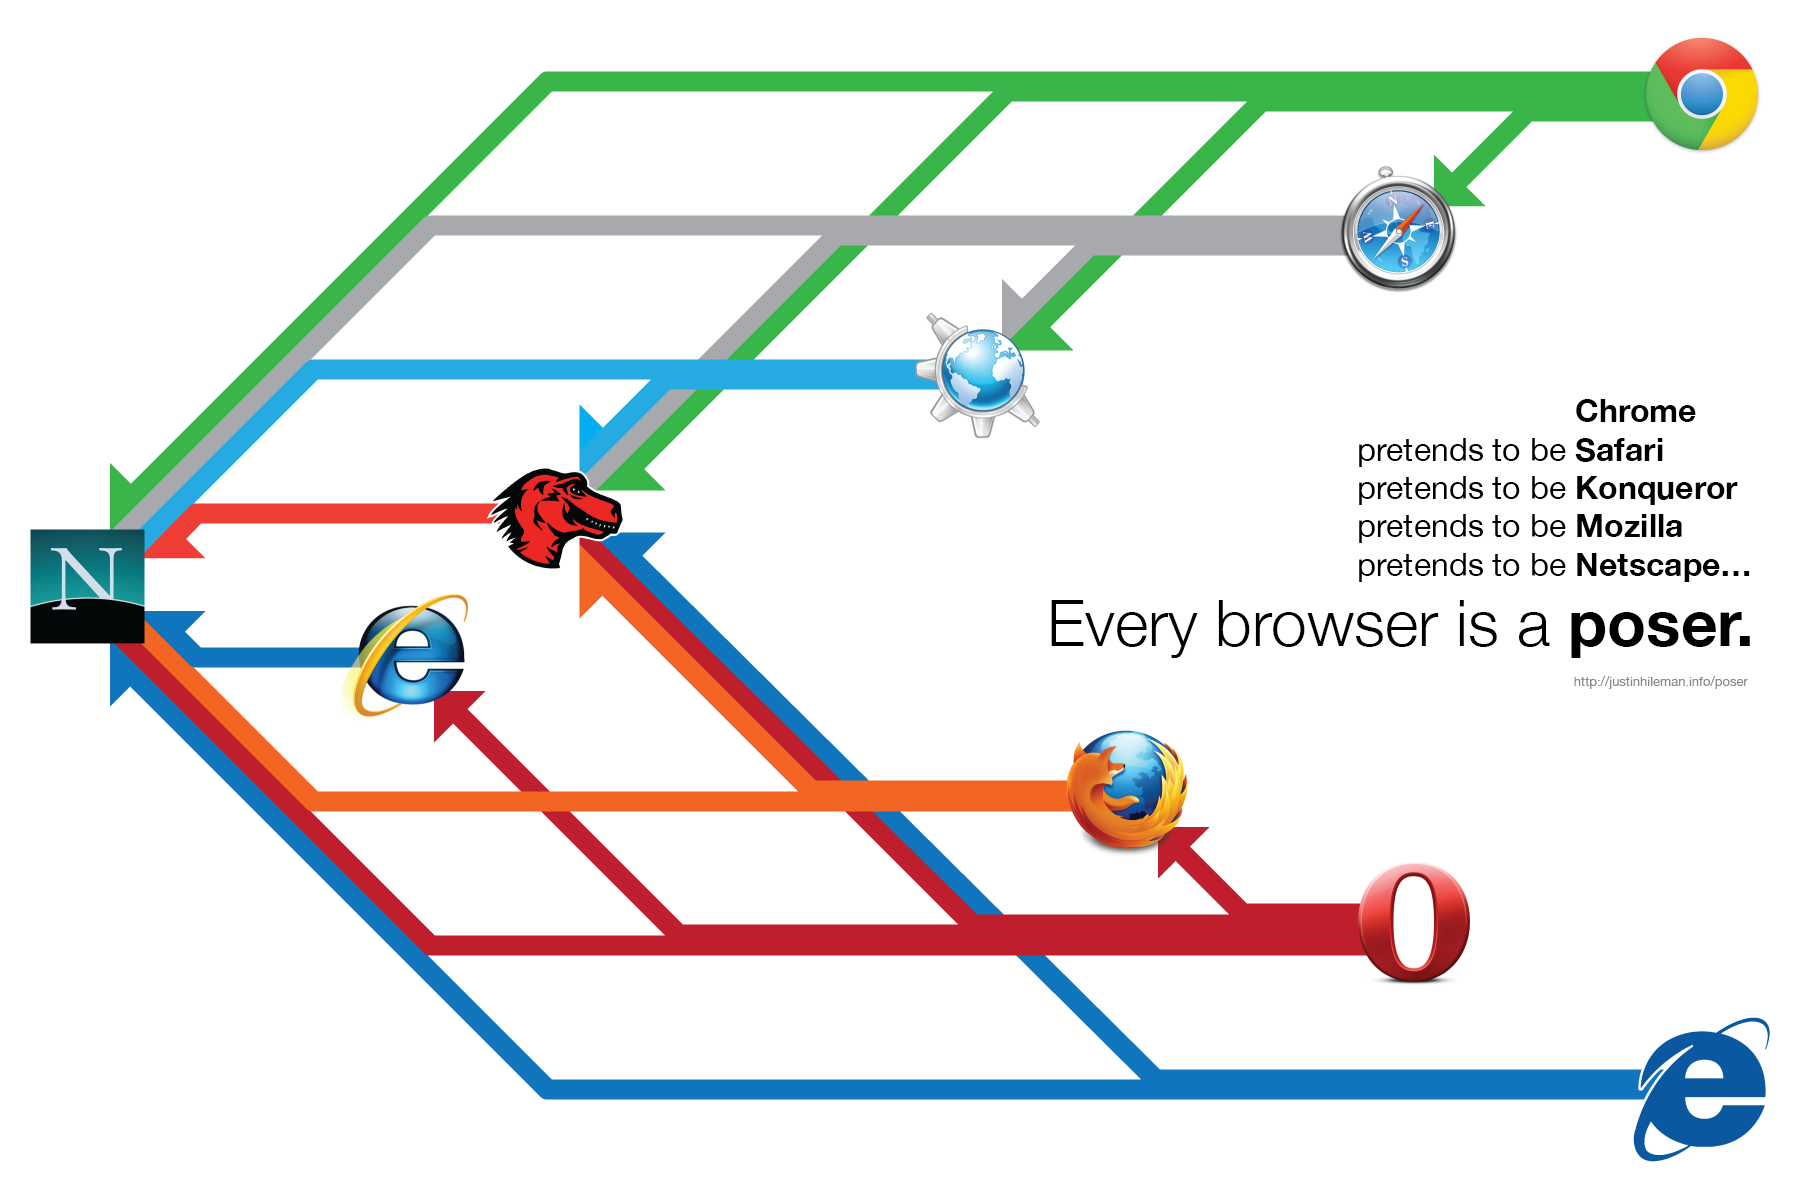 Every browser is a poser.